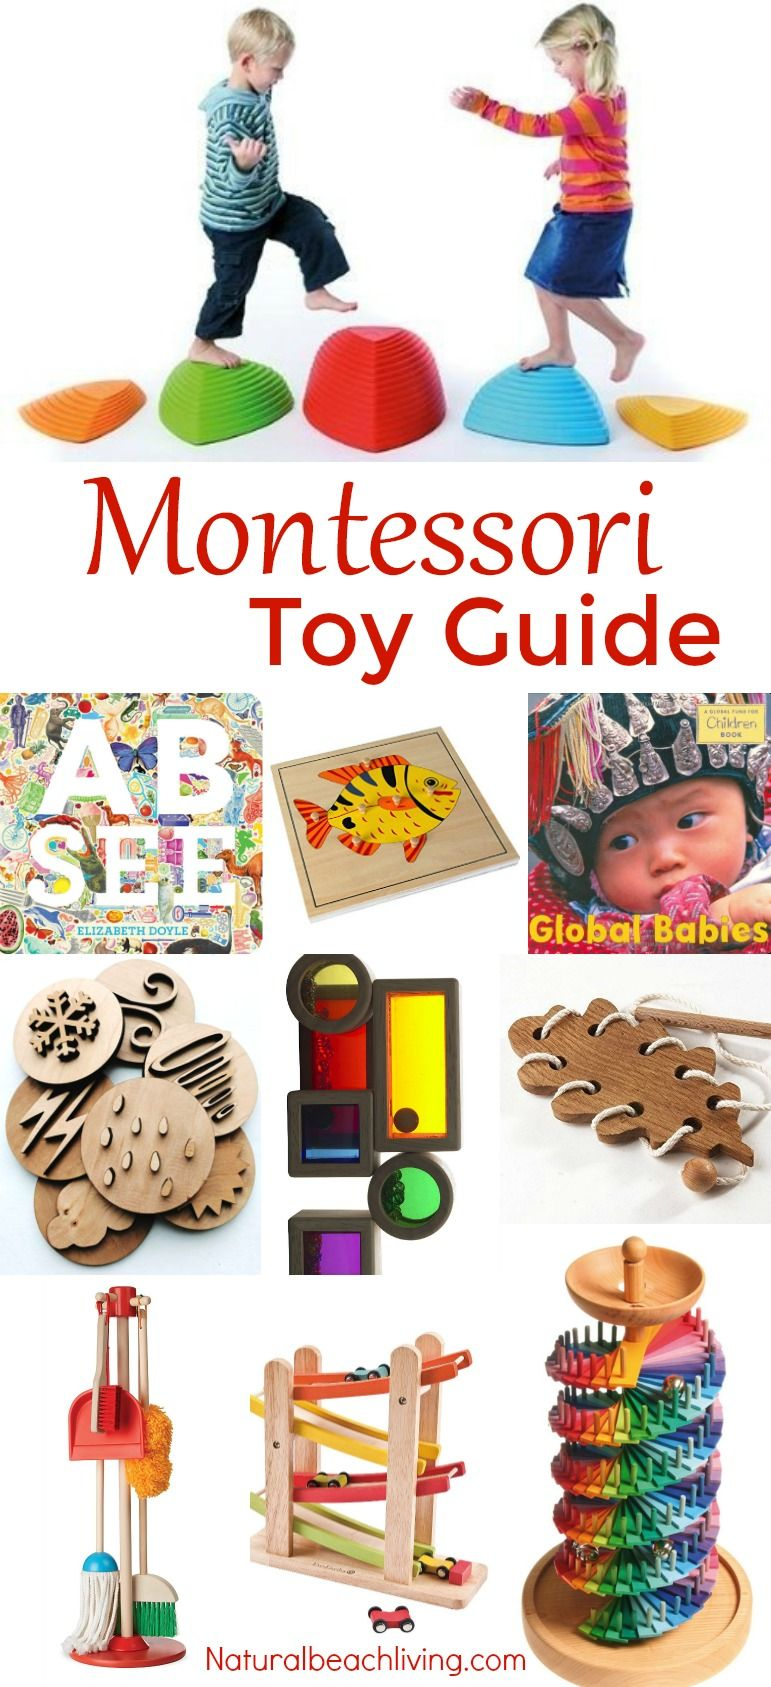 The Best Montessori Toy Guide For 3 6 Year Olds Natural Beach Living Montessori Toys Montessori Activities Toys By Age